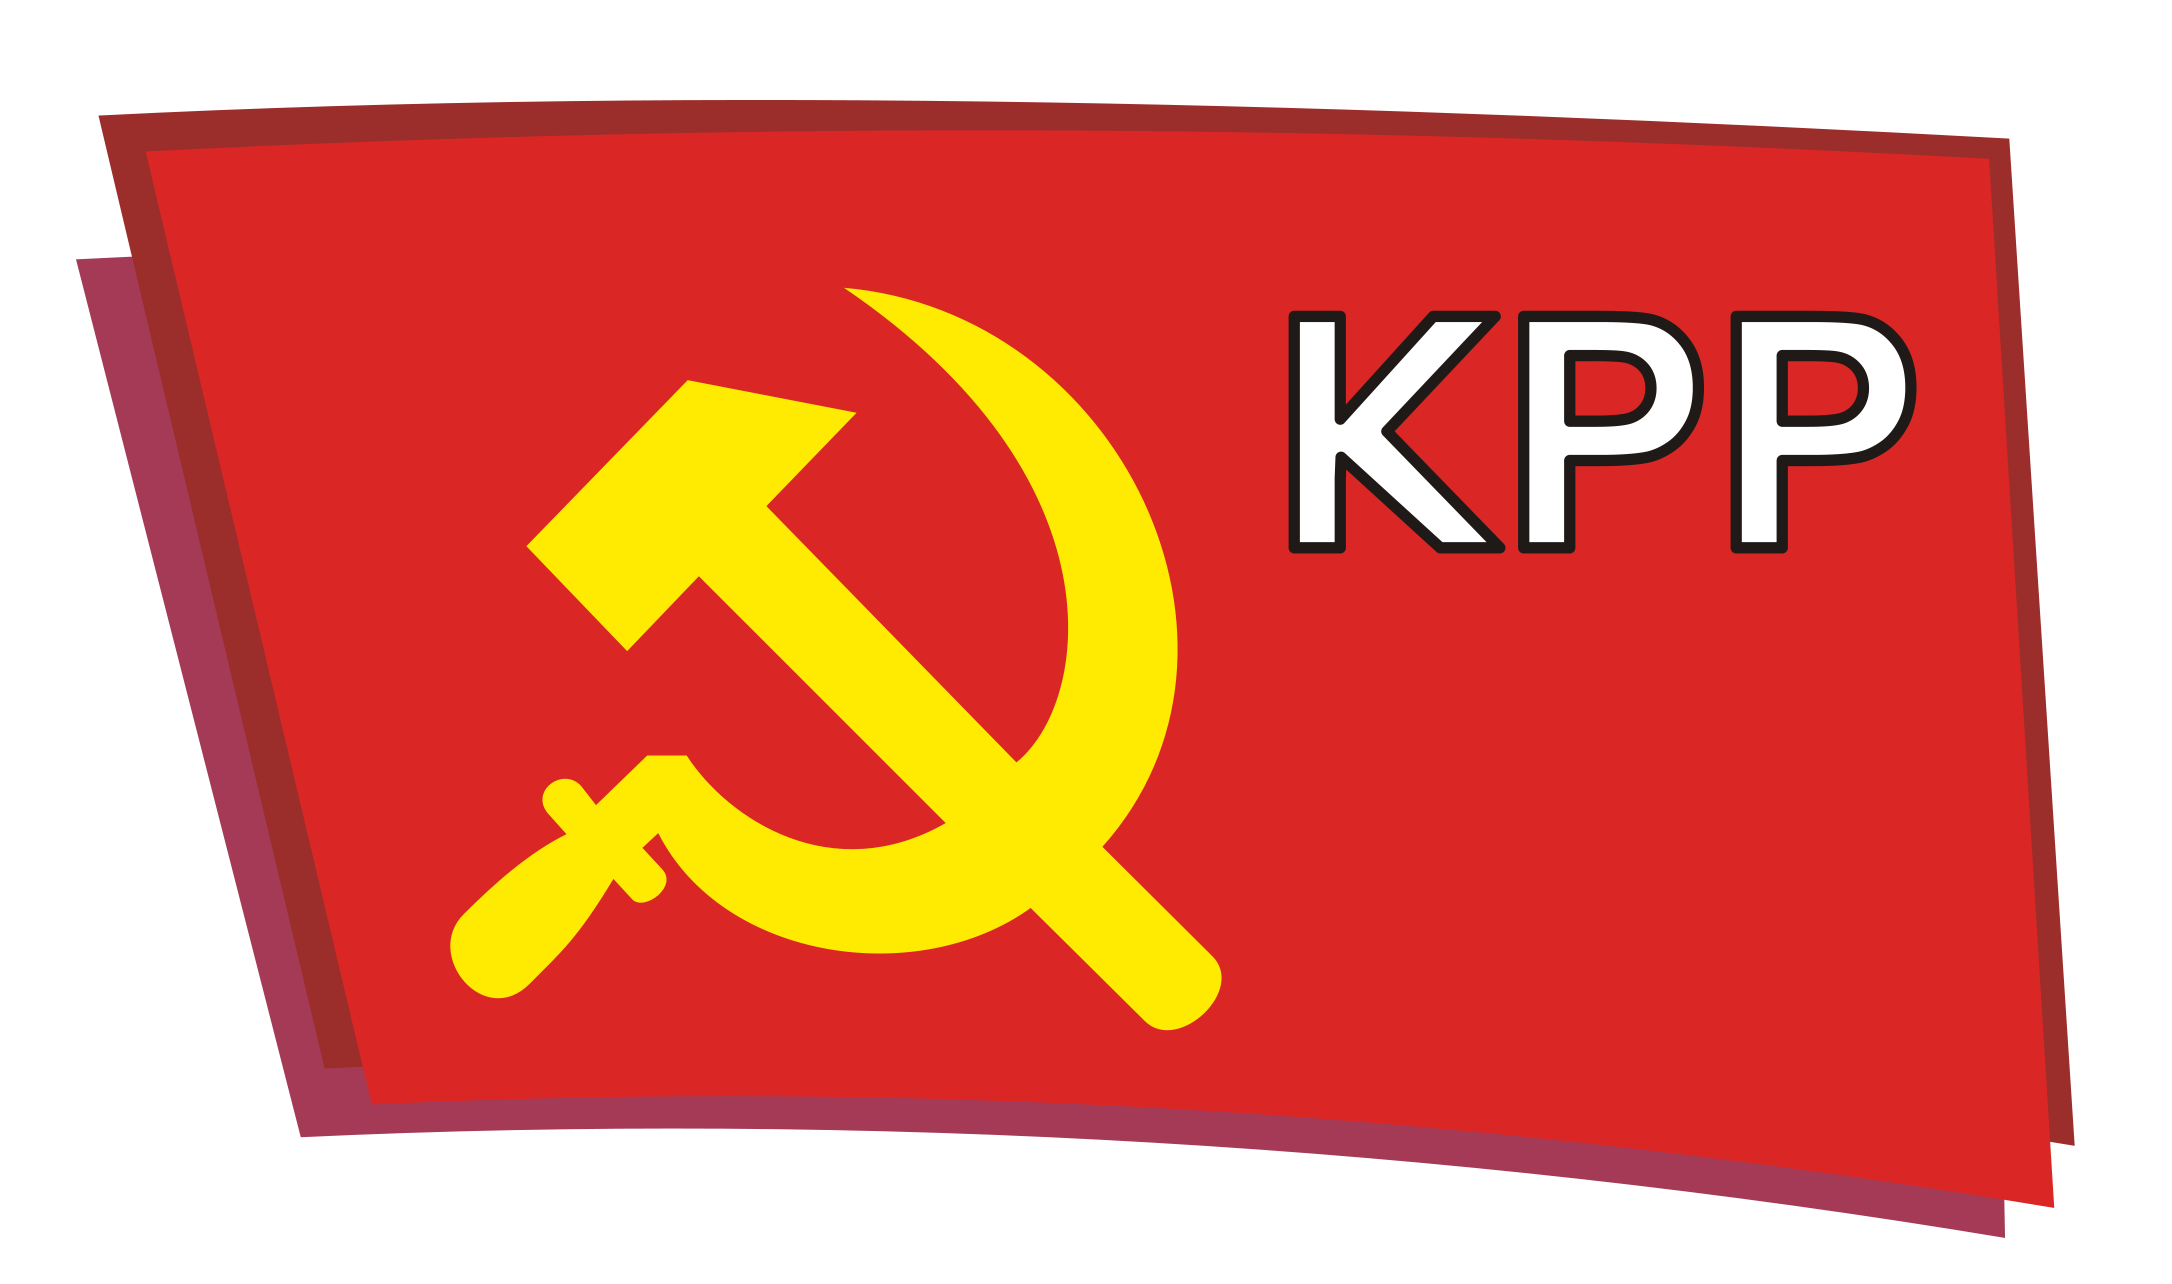 communism in poland Communist and post-communist studies is an international journal covering all communist and post-communist states and communist movements, including.